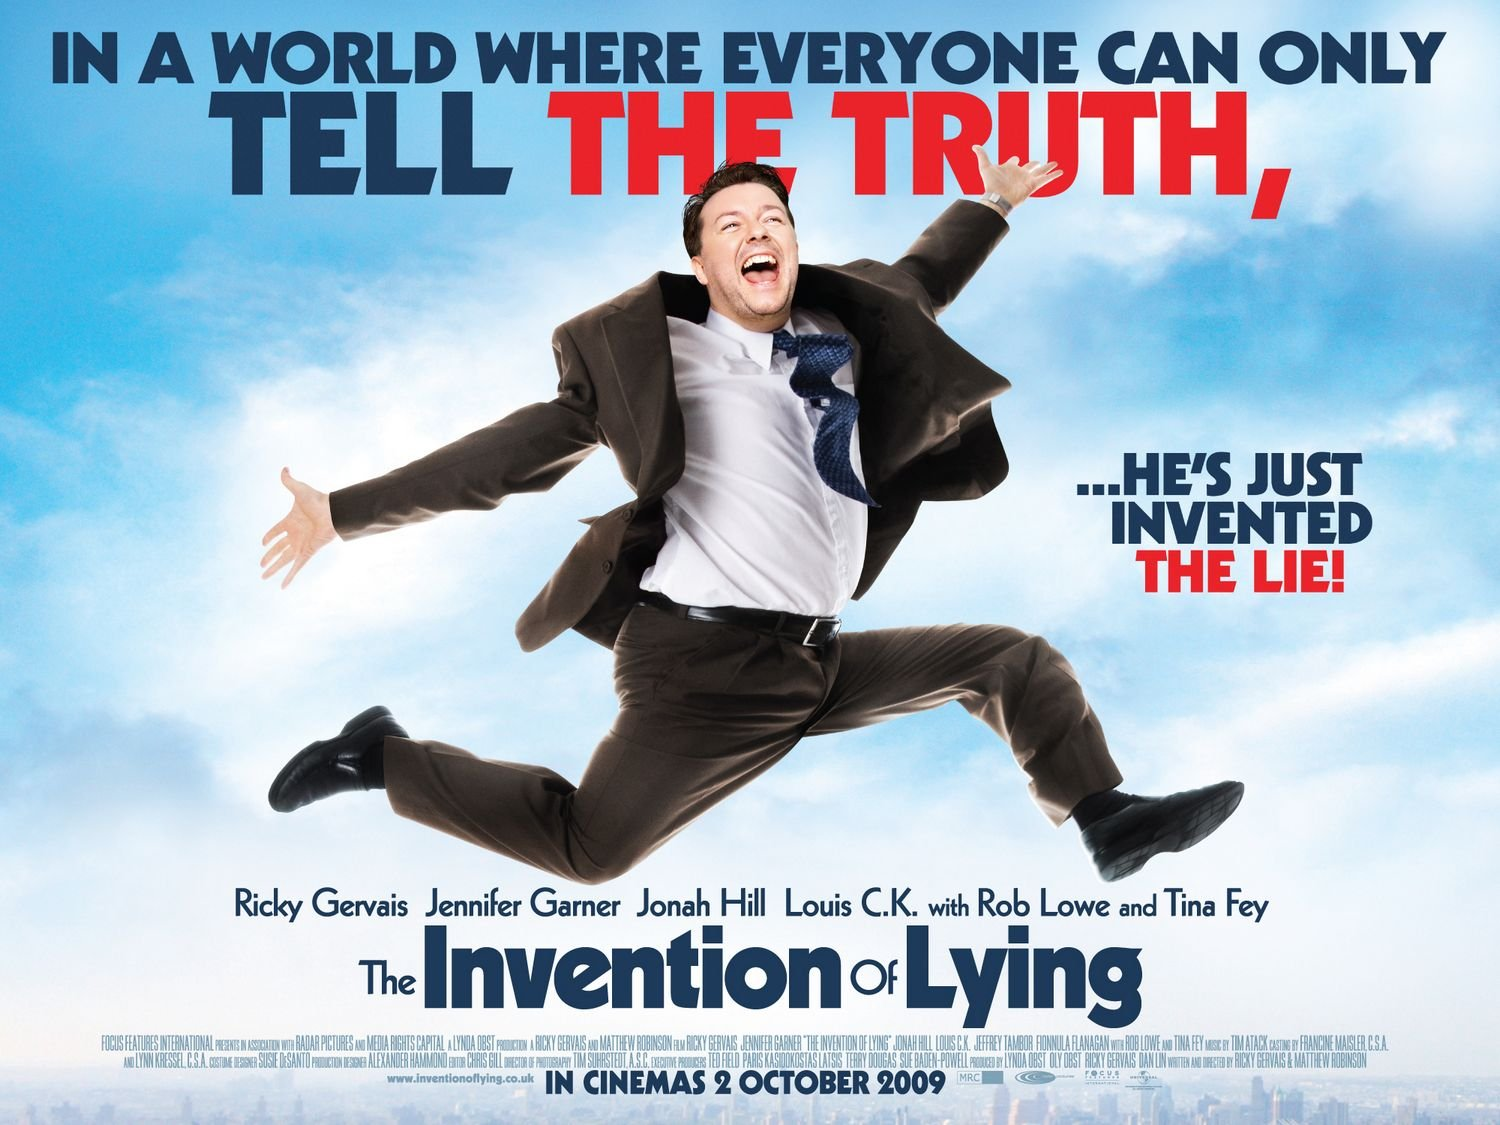 Movie Posters 2009: Invention Of Lying, The (2009) Poster